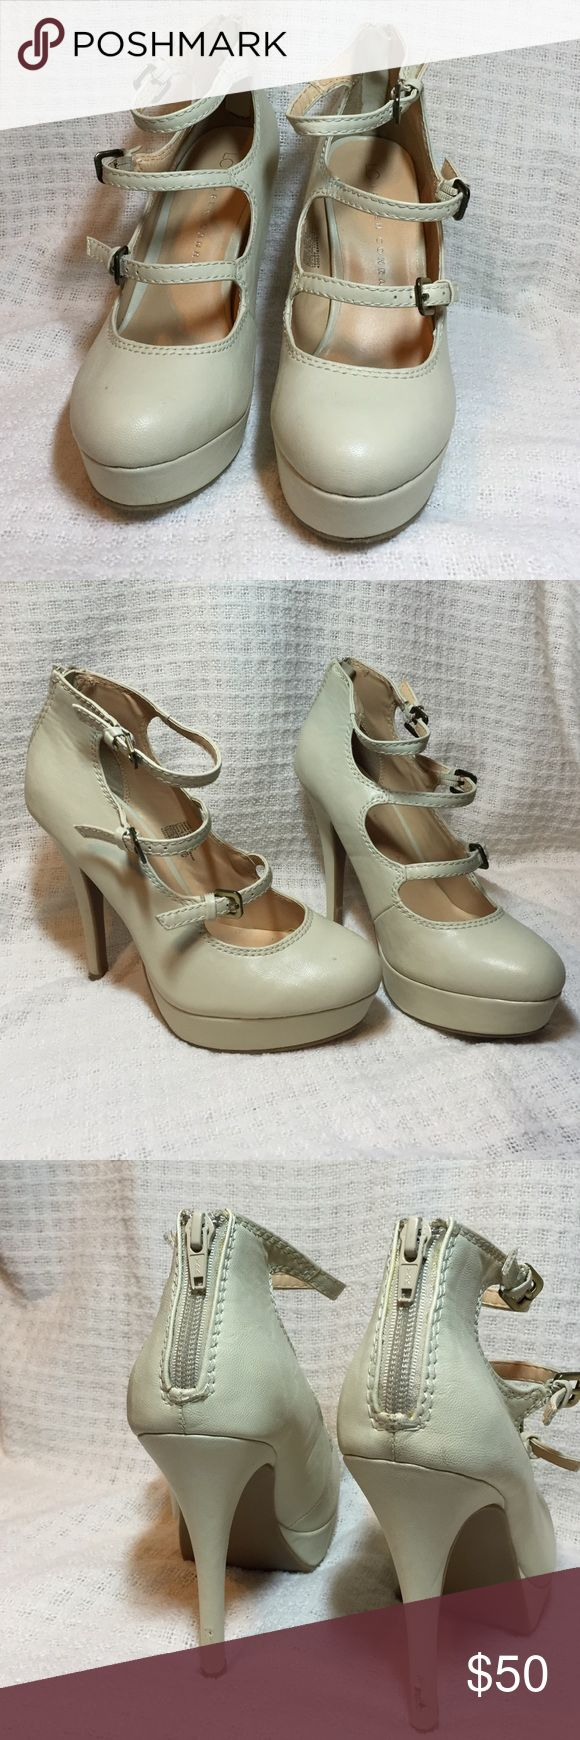 LC high heels Vienna cream high heels from LC collection. With a cute zipper on the back. Clean and nice, has a little scratch on the back heel as shows in photo. LC Lauren Conrad Shoes Heels